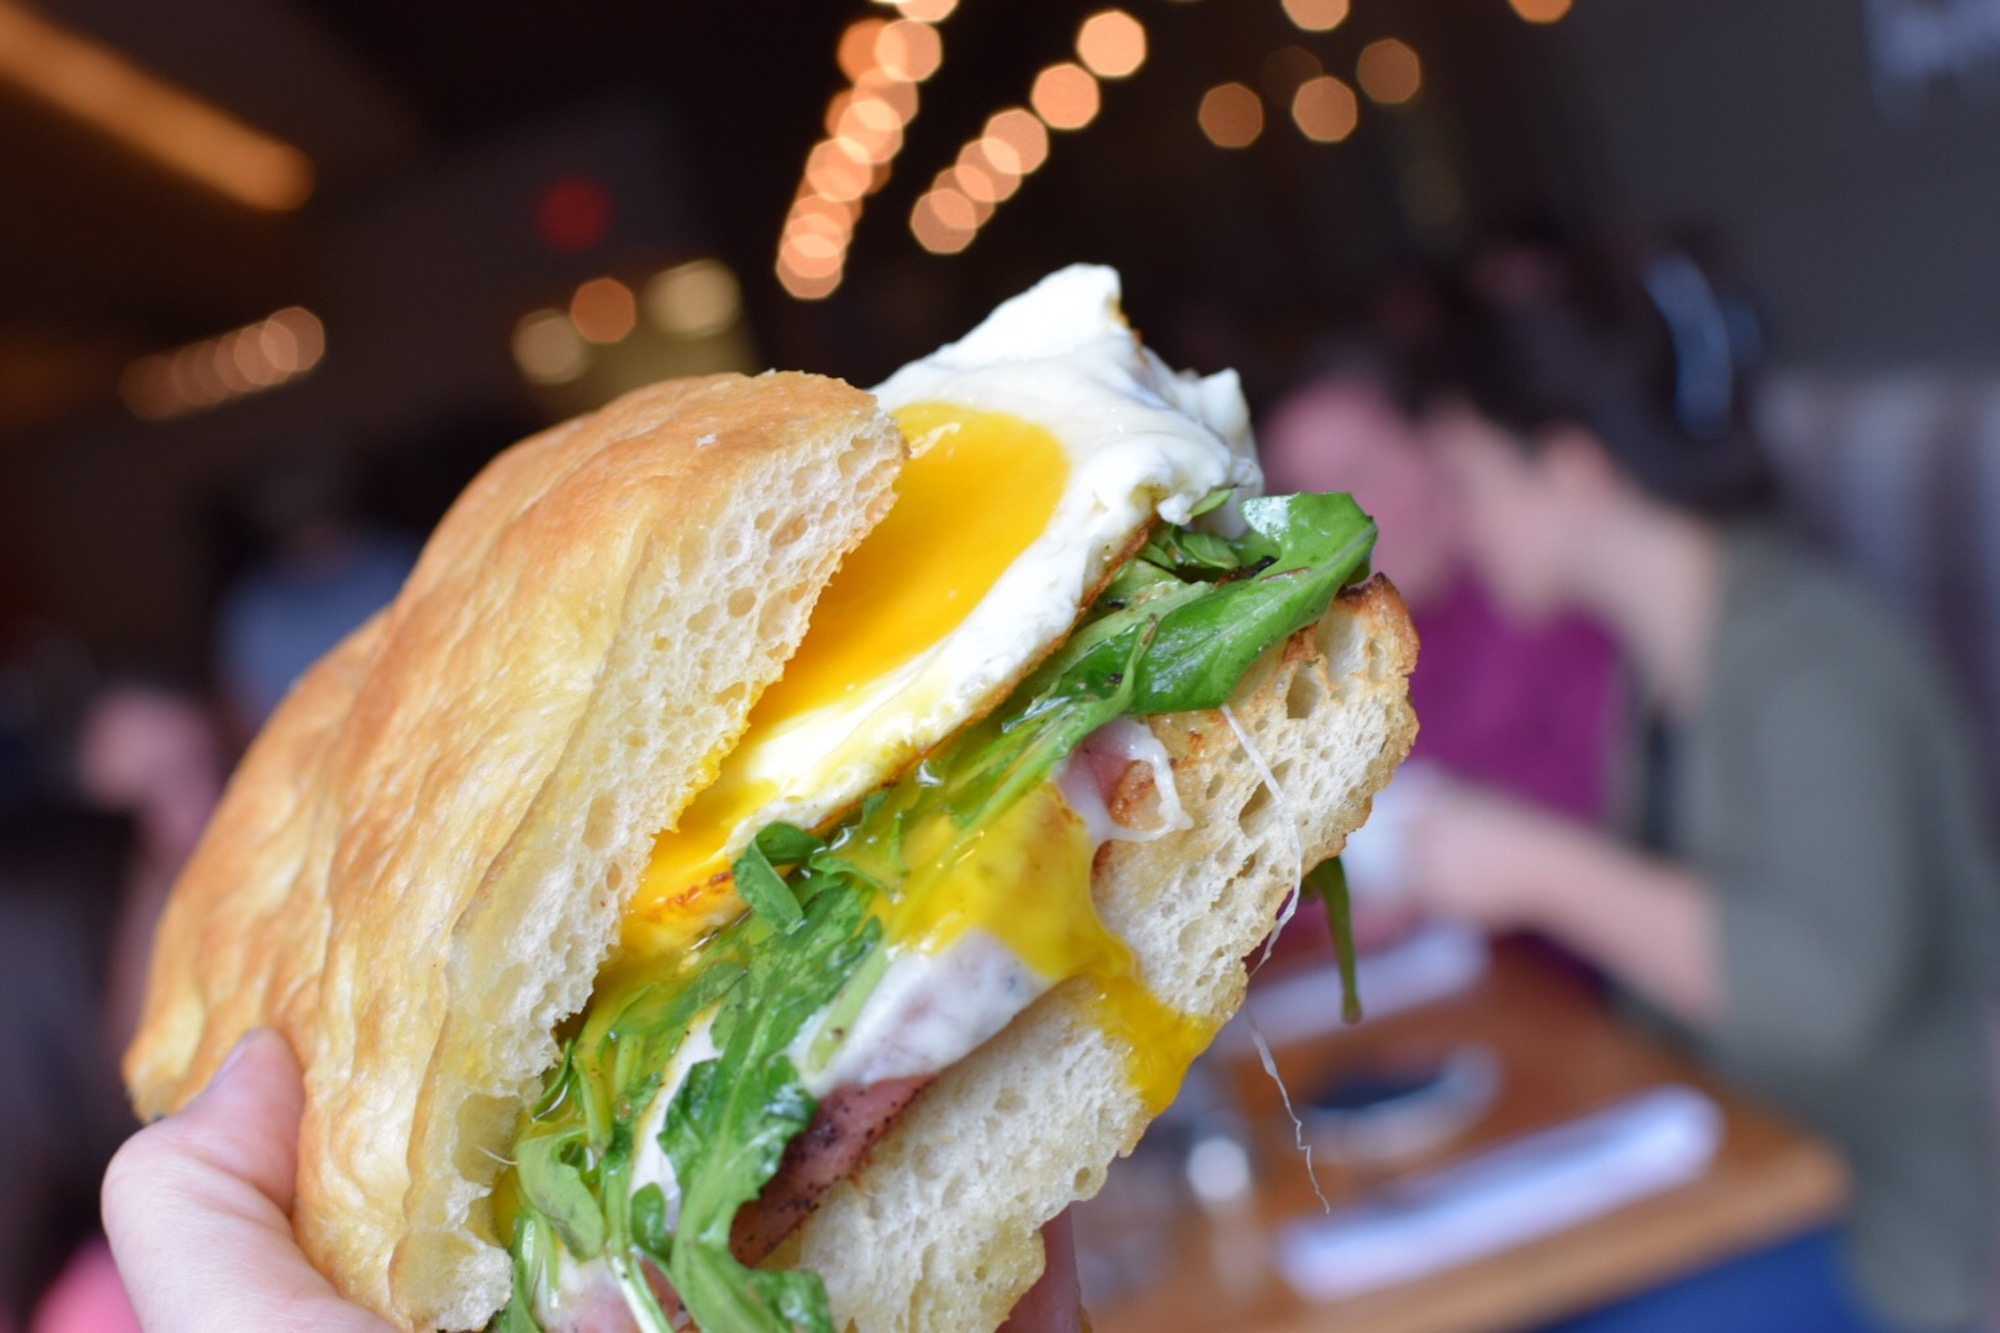 Fried Mortadella and Egg Sandwich